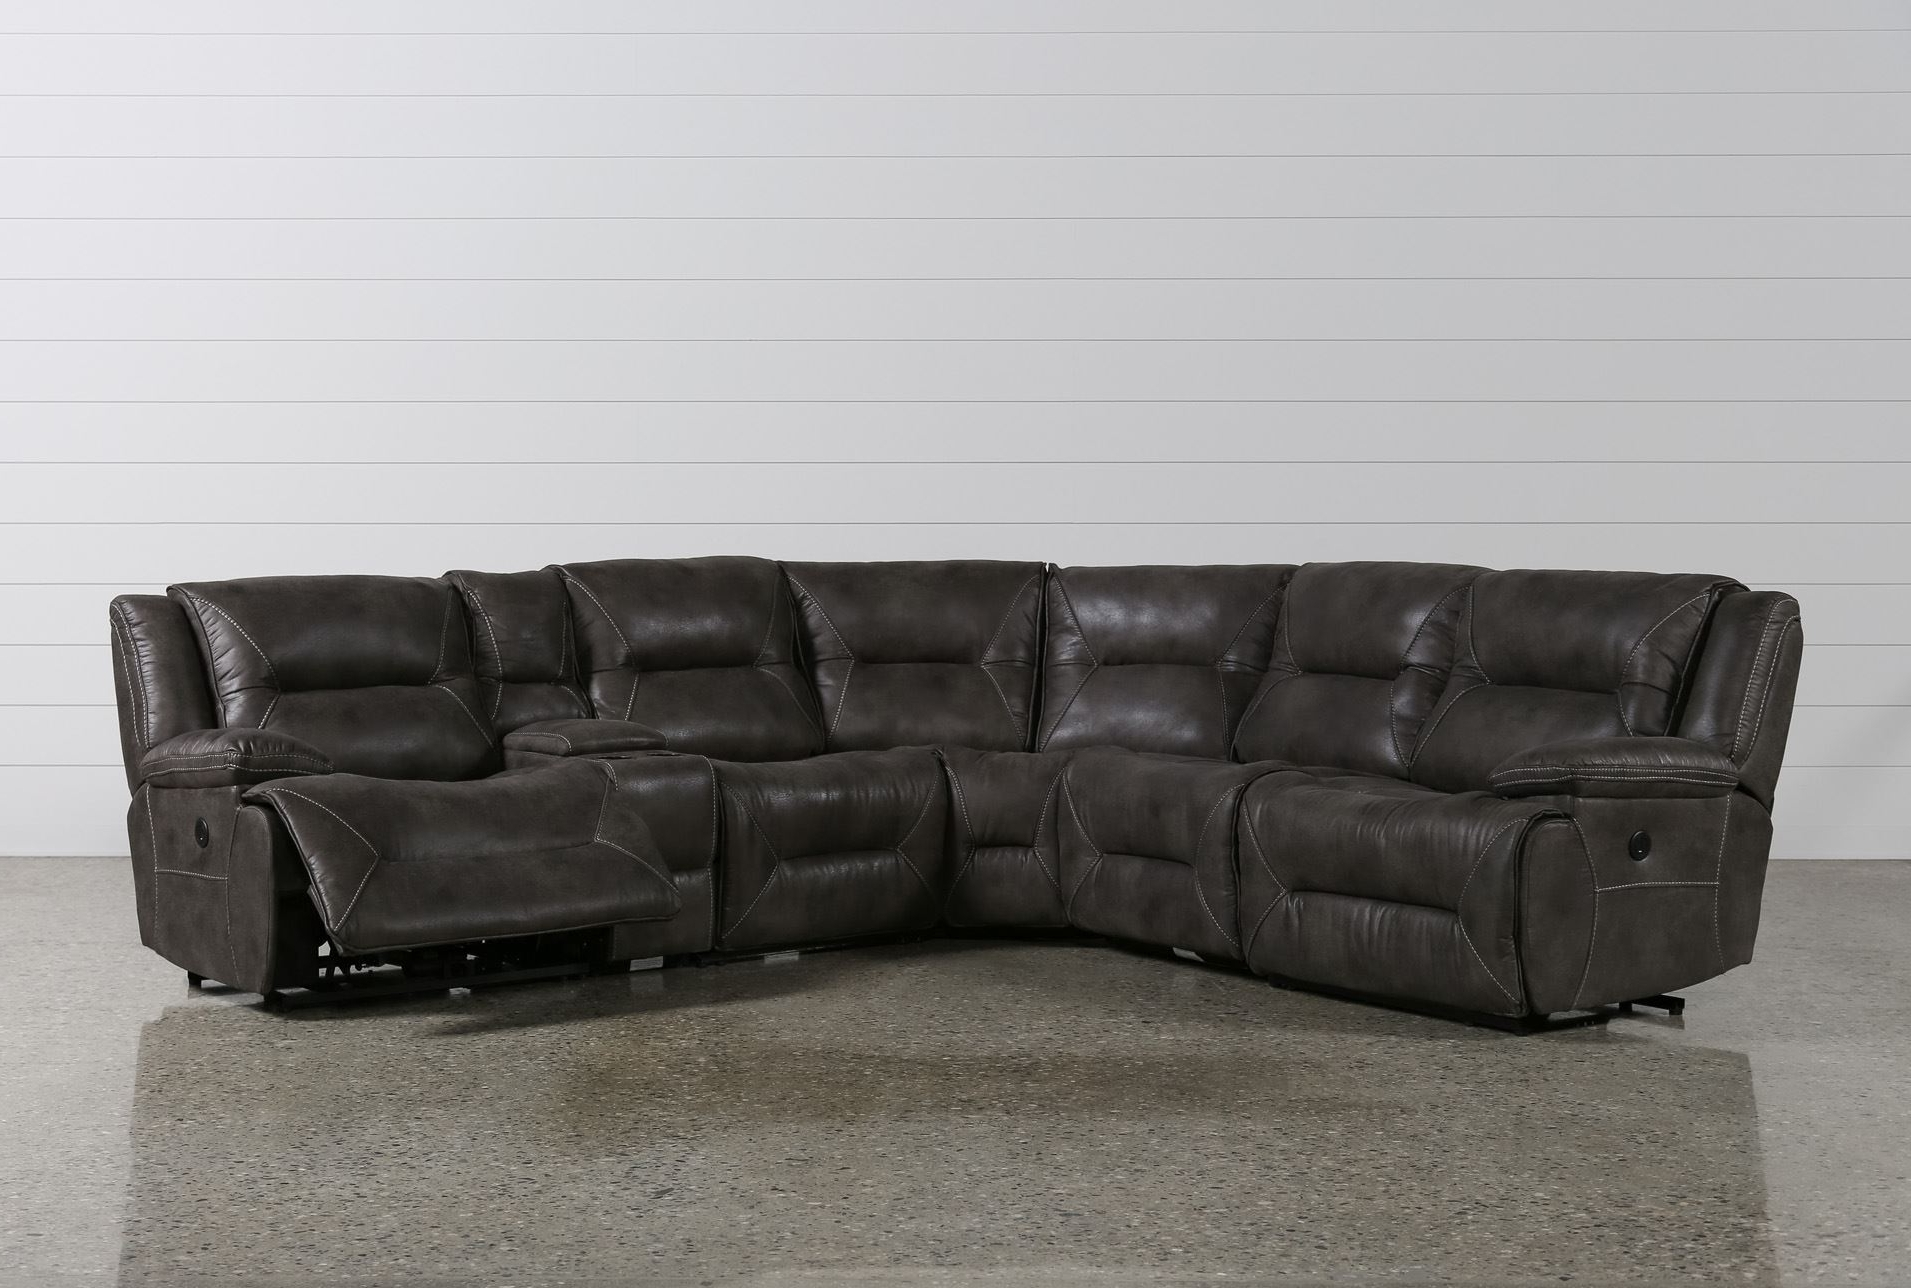 2019 Epic 6 Piece Leather Sectional Sofa 70 With Additional With 6 Regarding 6 Piece Leather Sectional Sofas (View 1 of 20)